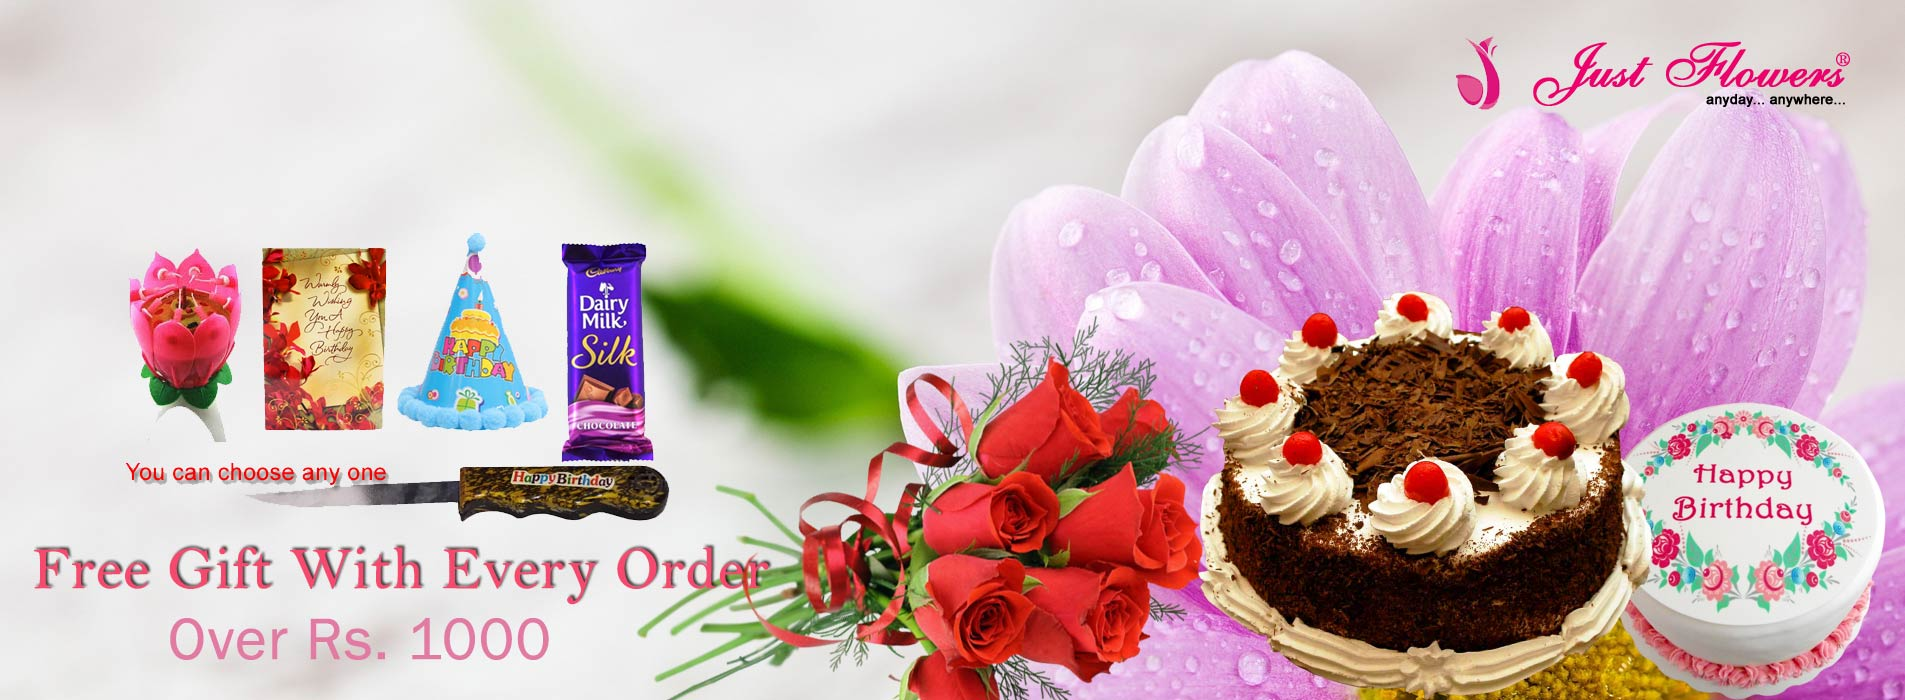 Just flowers online flowers delivery in india florist in india birthday izmirmasajfo